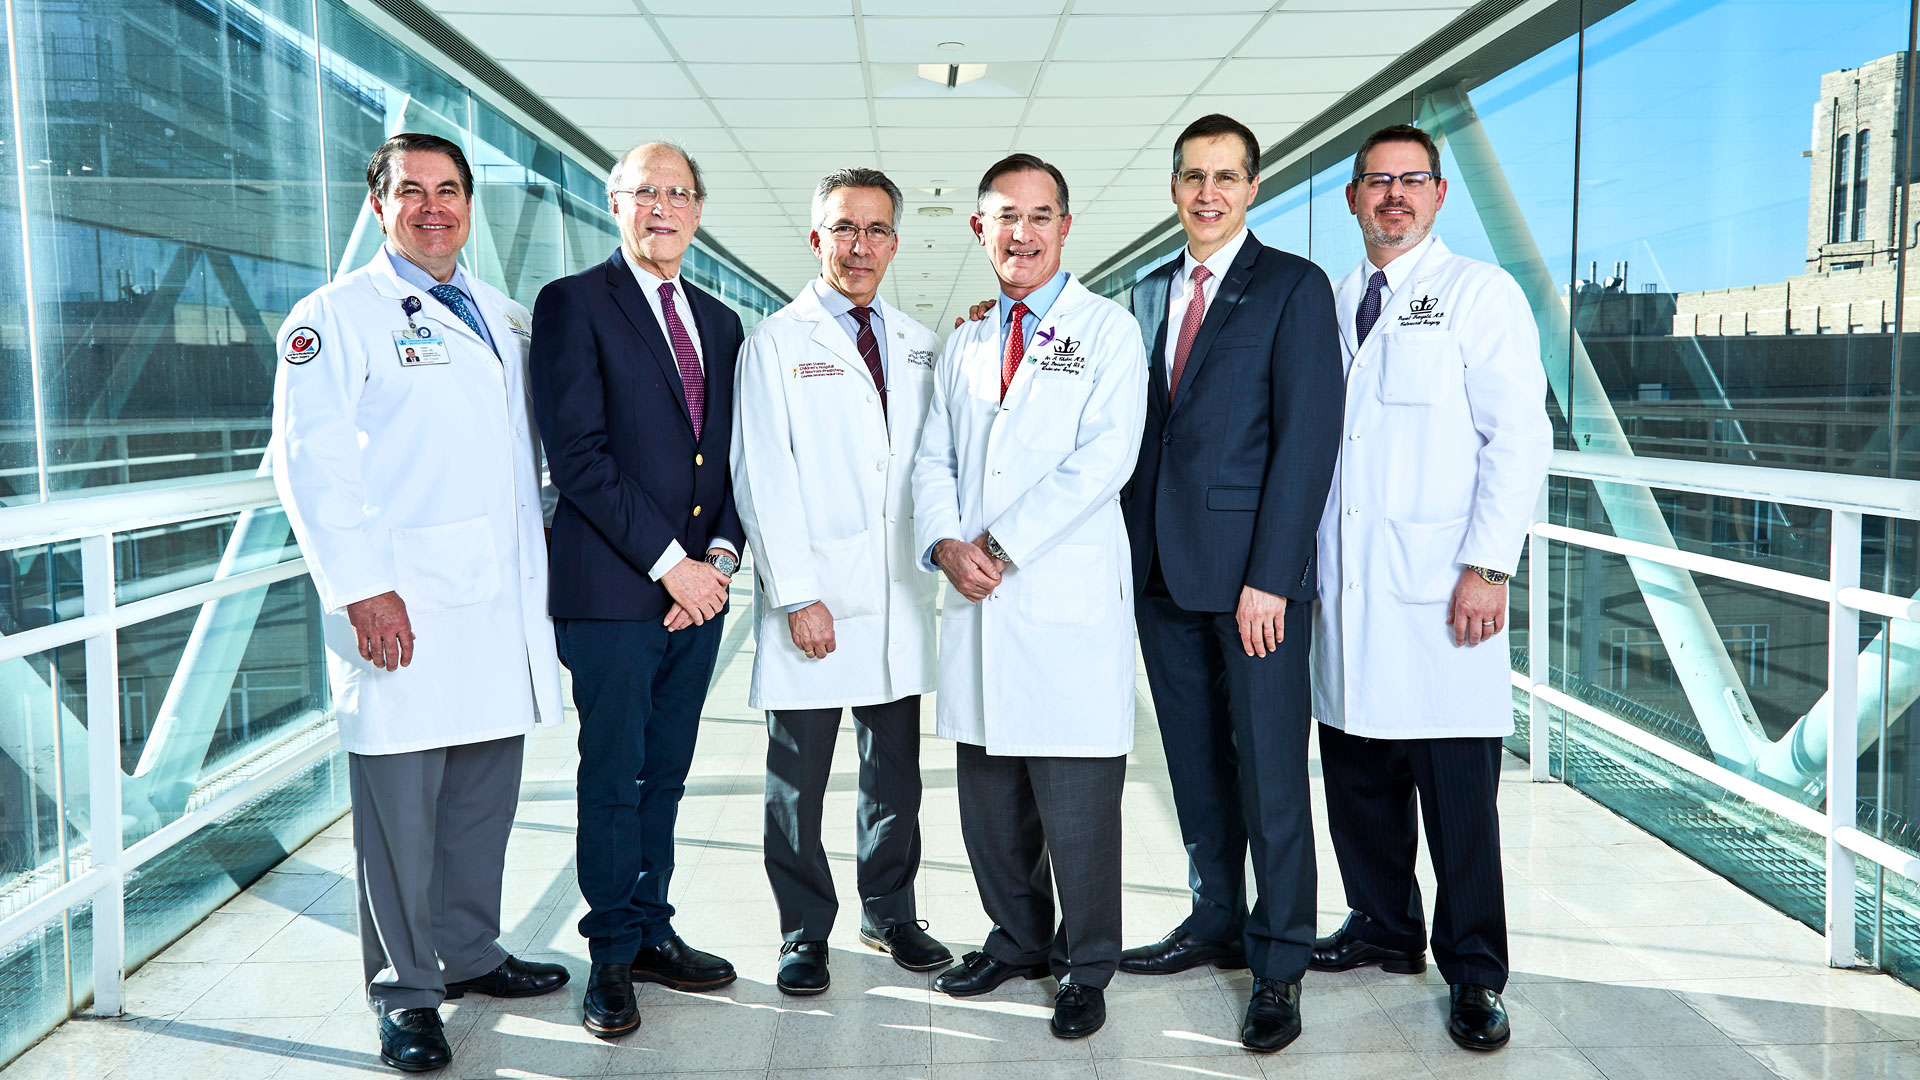 20 Columbia Surgeons Named 2019 Super Doctors | Columbia